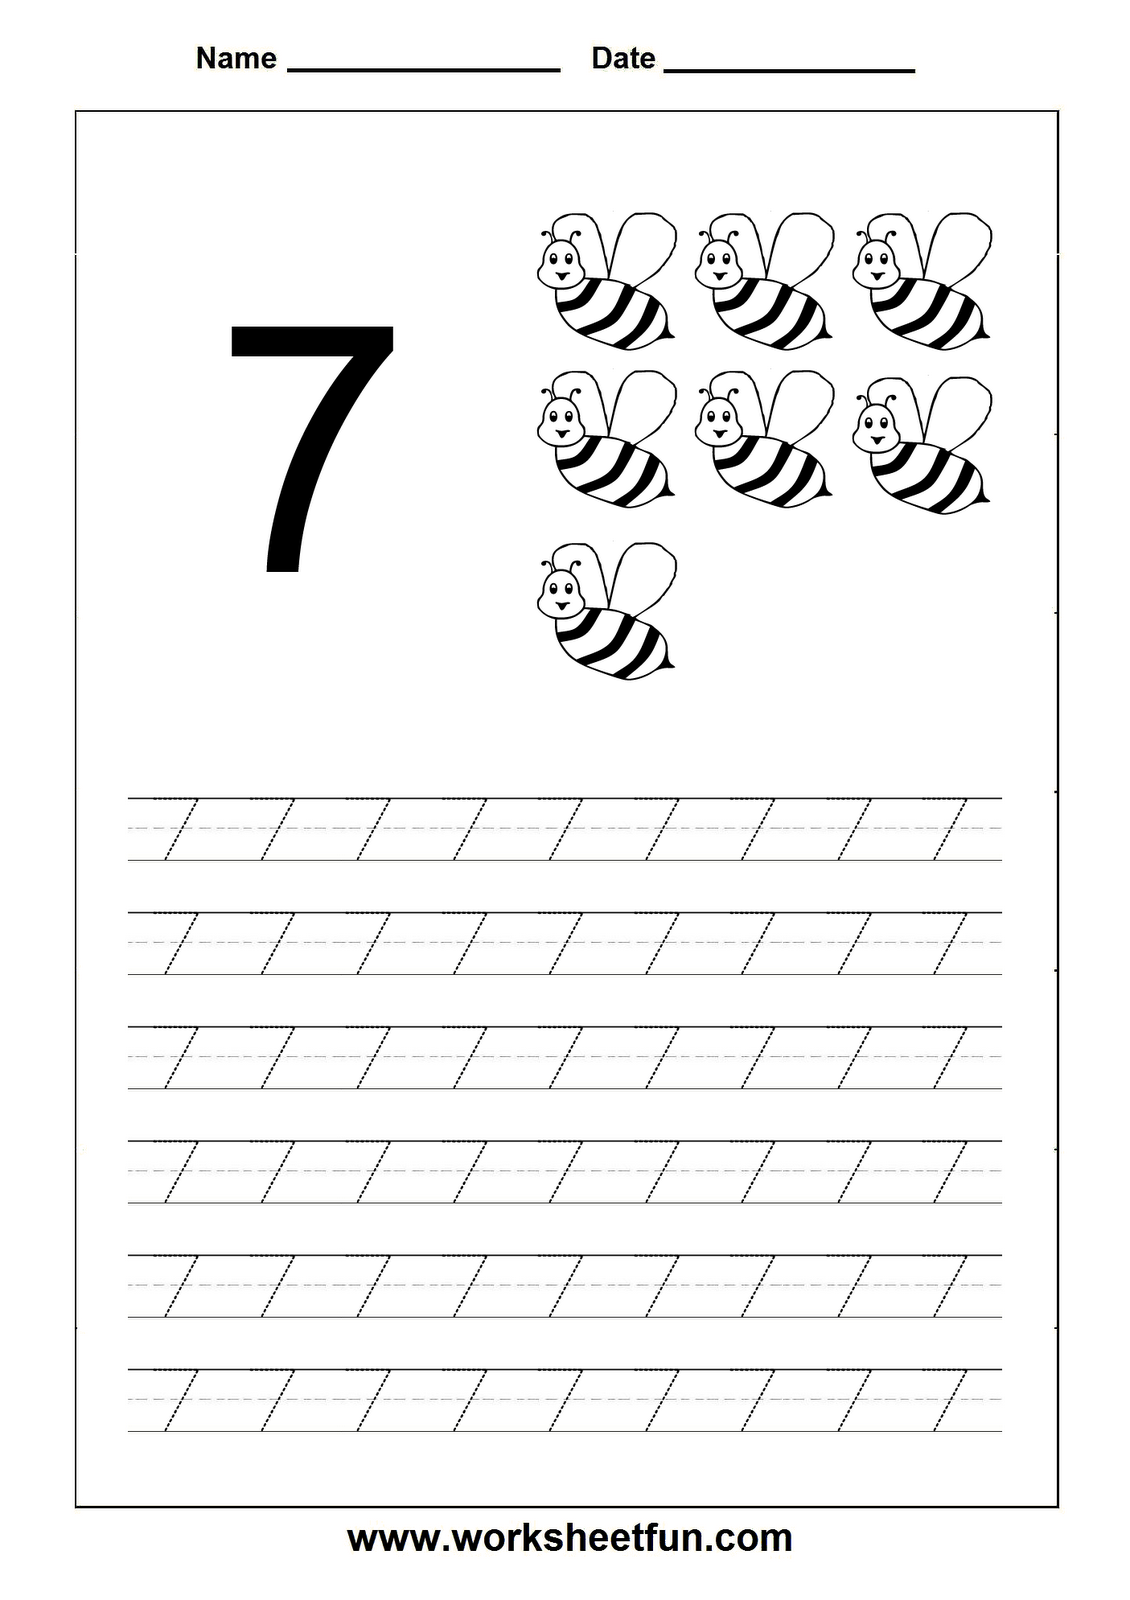 Number Tracing Worksheet 7 Maths Pinterest